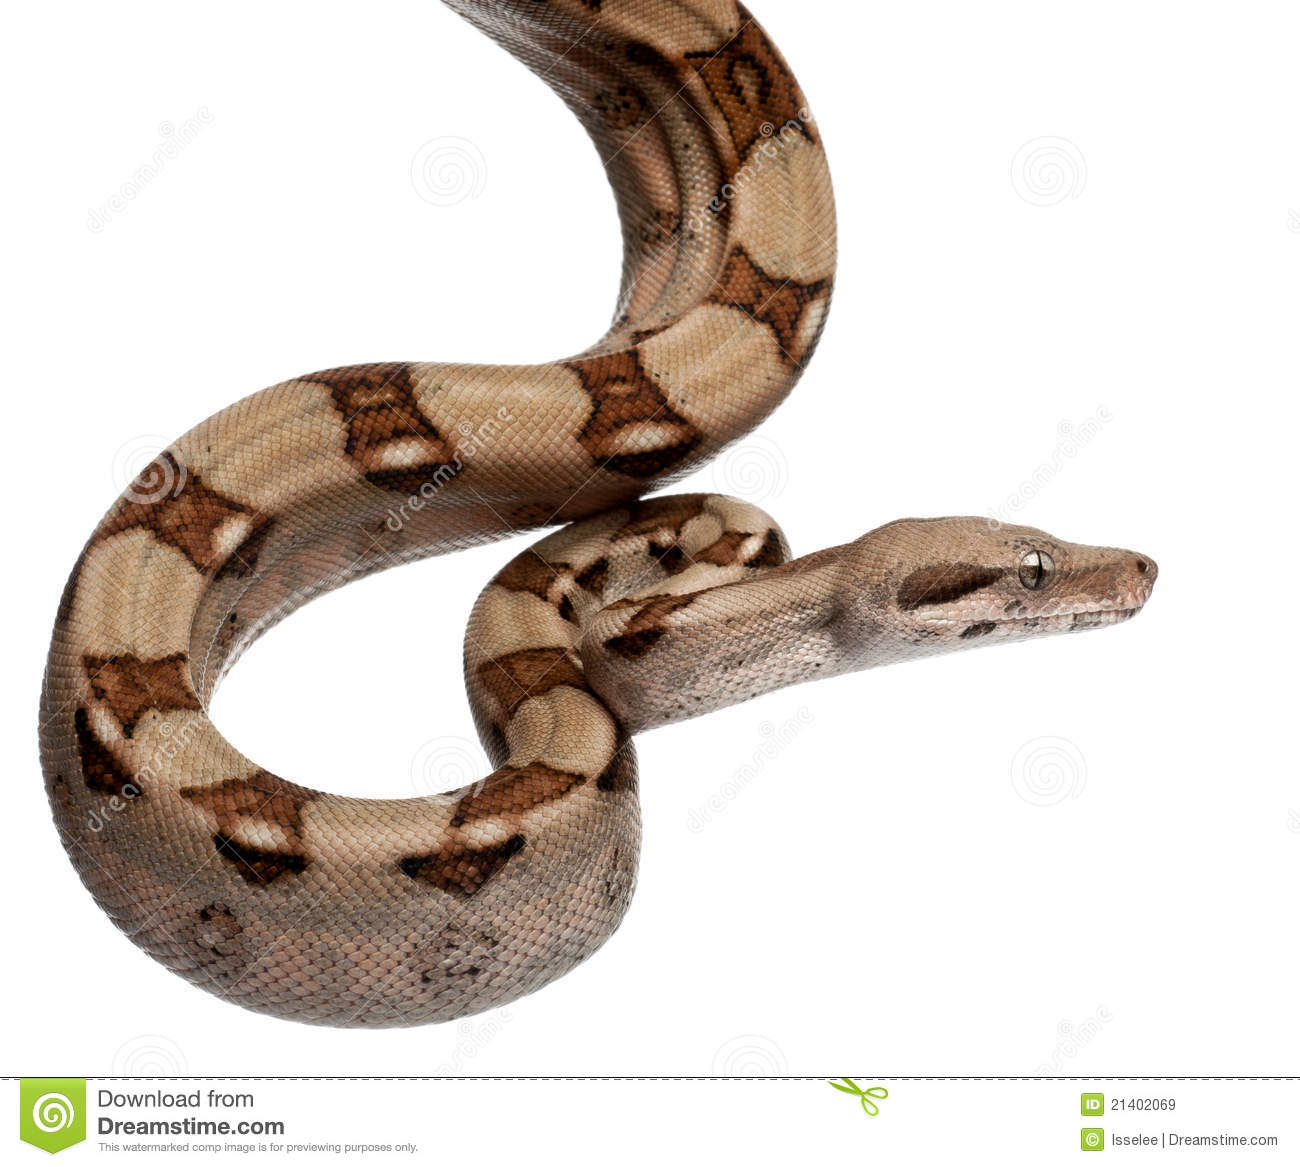 Royalty Free Stock Images Salmon Boa Constrictor Boa Constrictor Image21402069 besides Stock Photos Old Well Image11975793 in addition Detective Conan Psd Cartoon additionally Royalty Free Stock Photo Rhino Vector Illustration Image9891095 likewise Beautiful Blue Butterfly. on cartoon animal themes